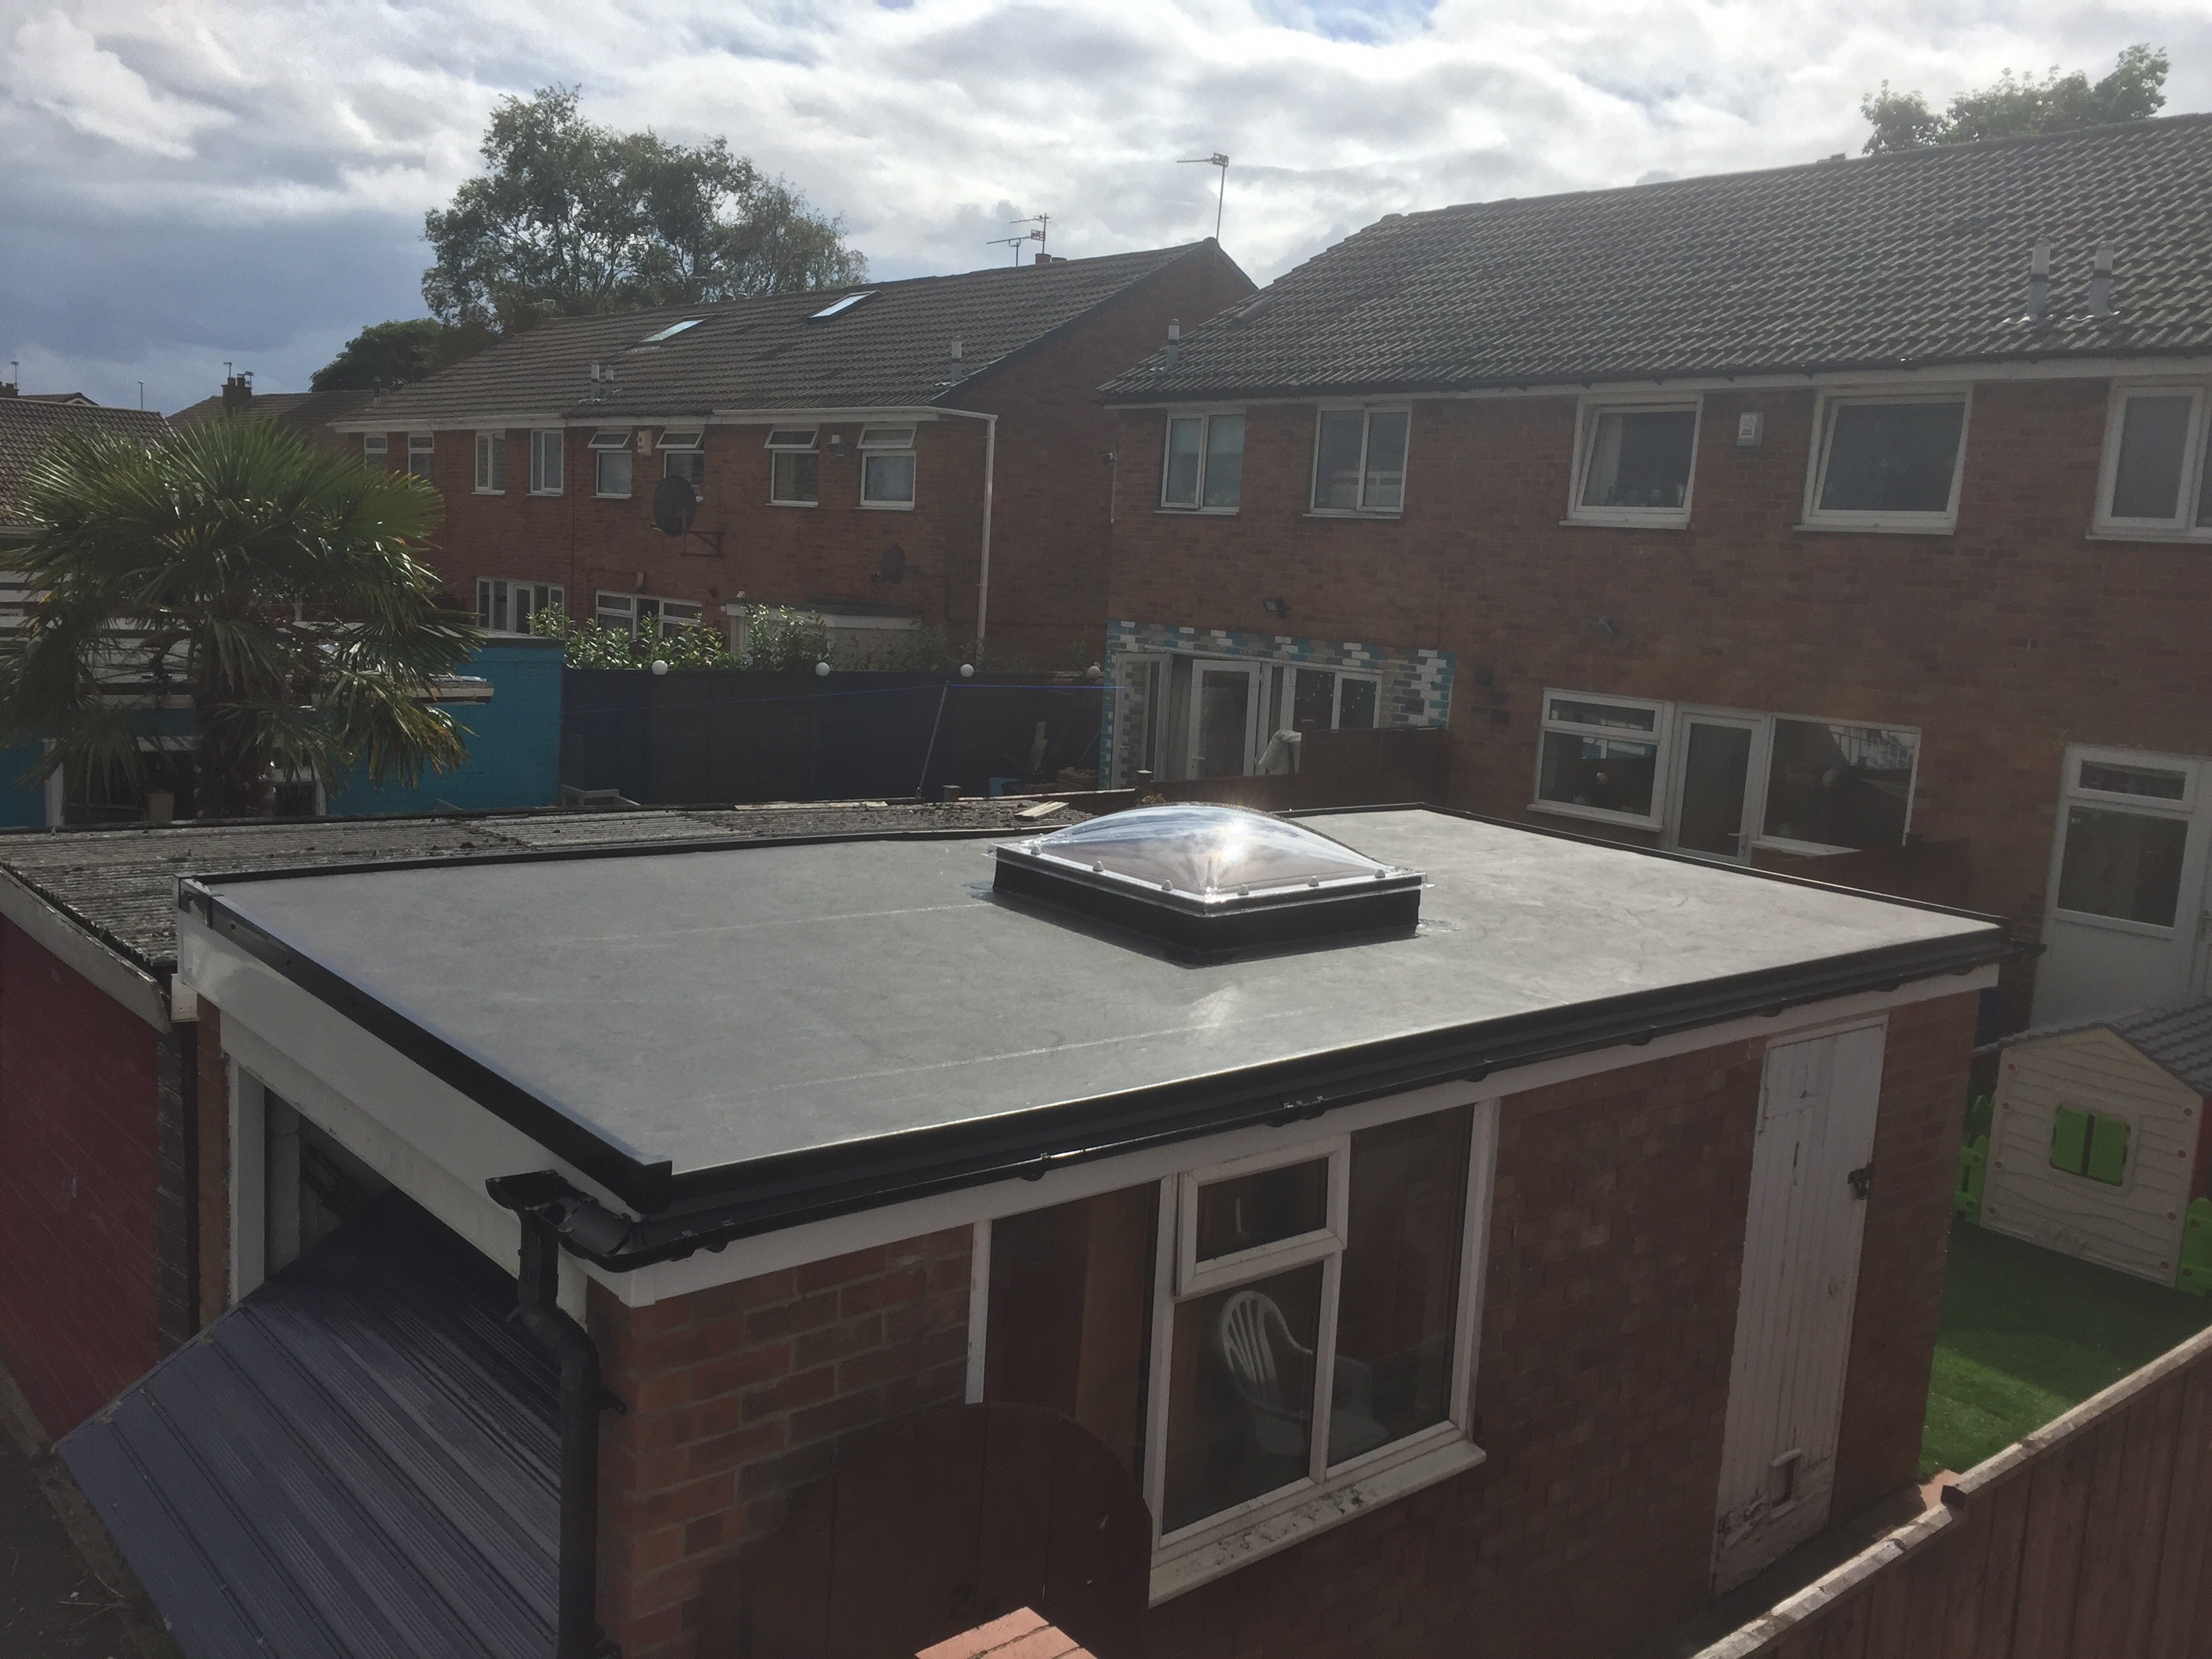 Flat Roofing in Newcastle Extension with Rooflight